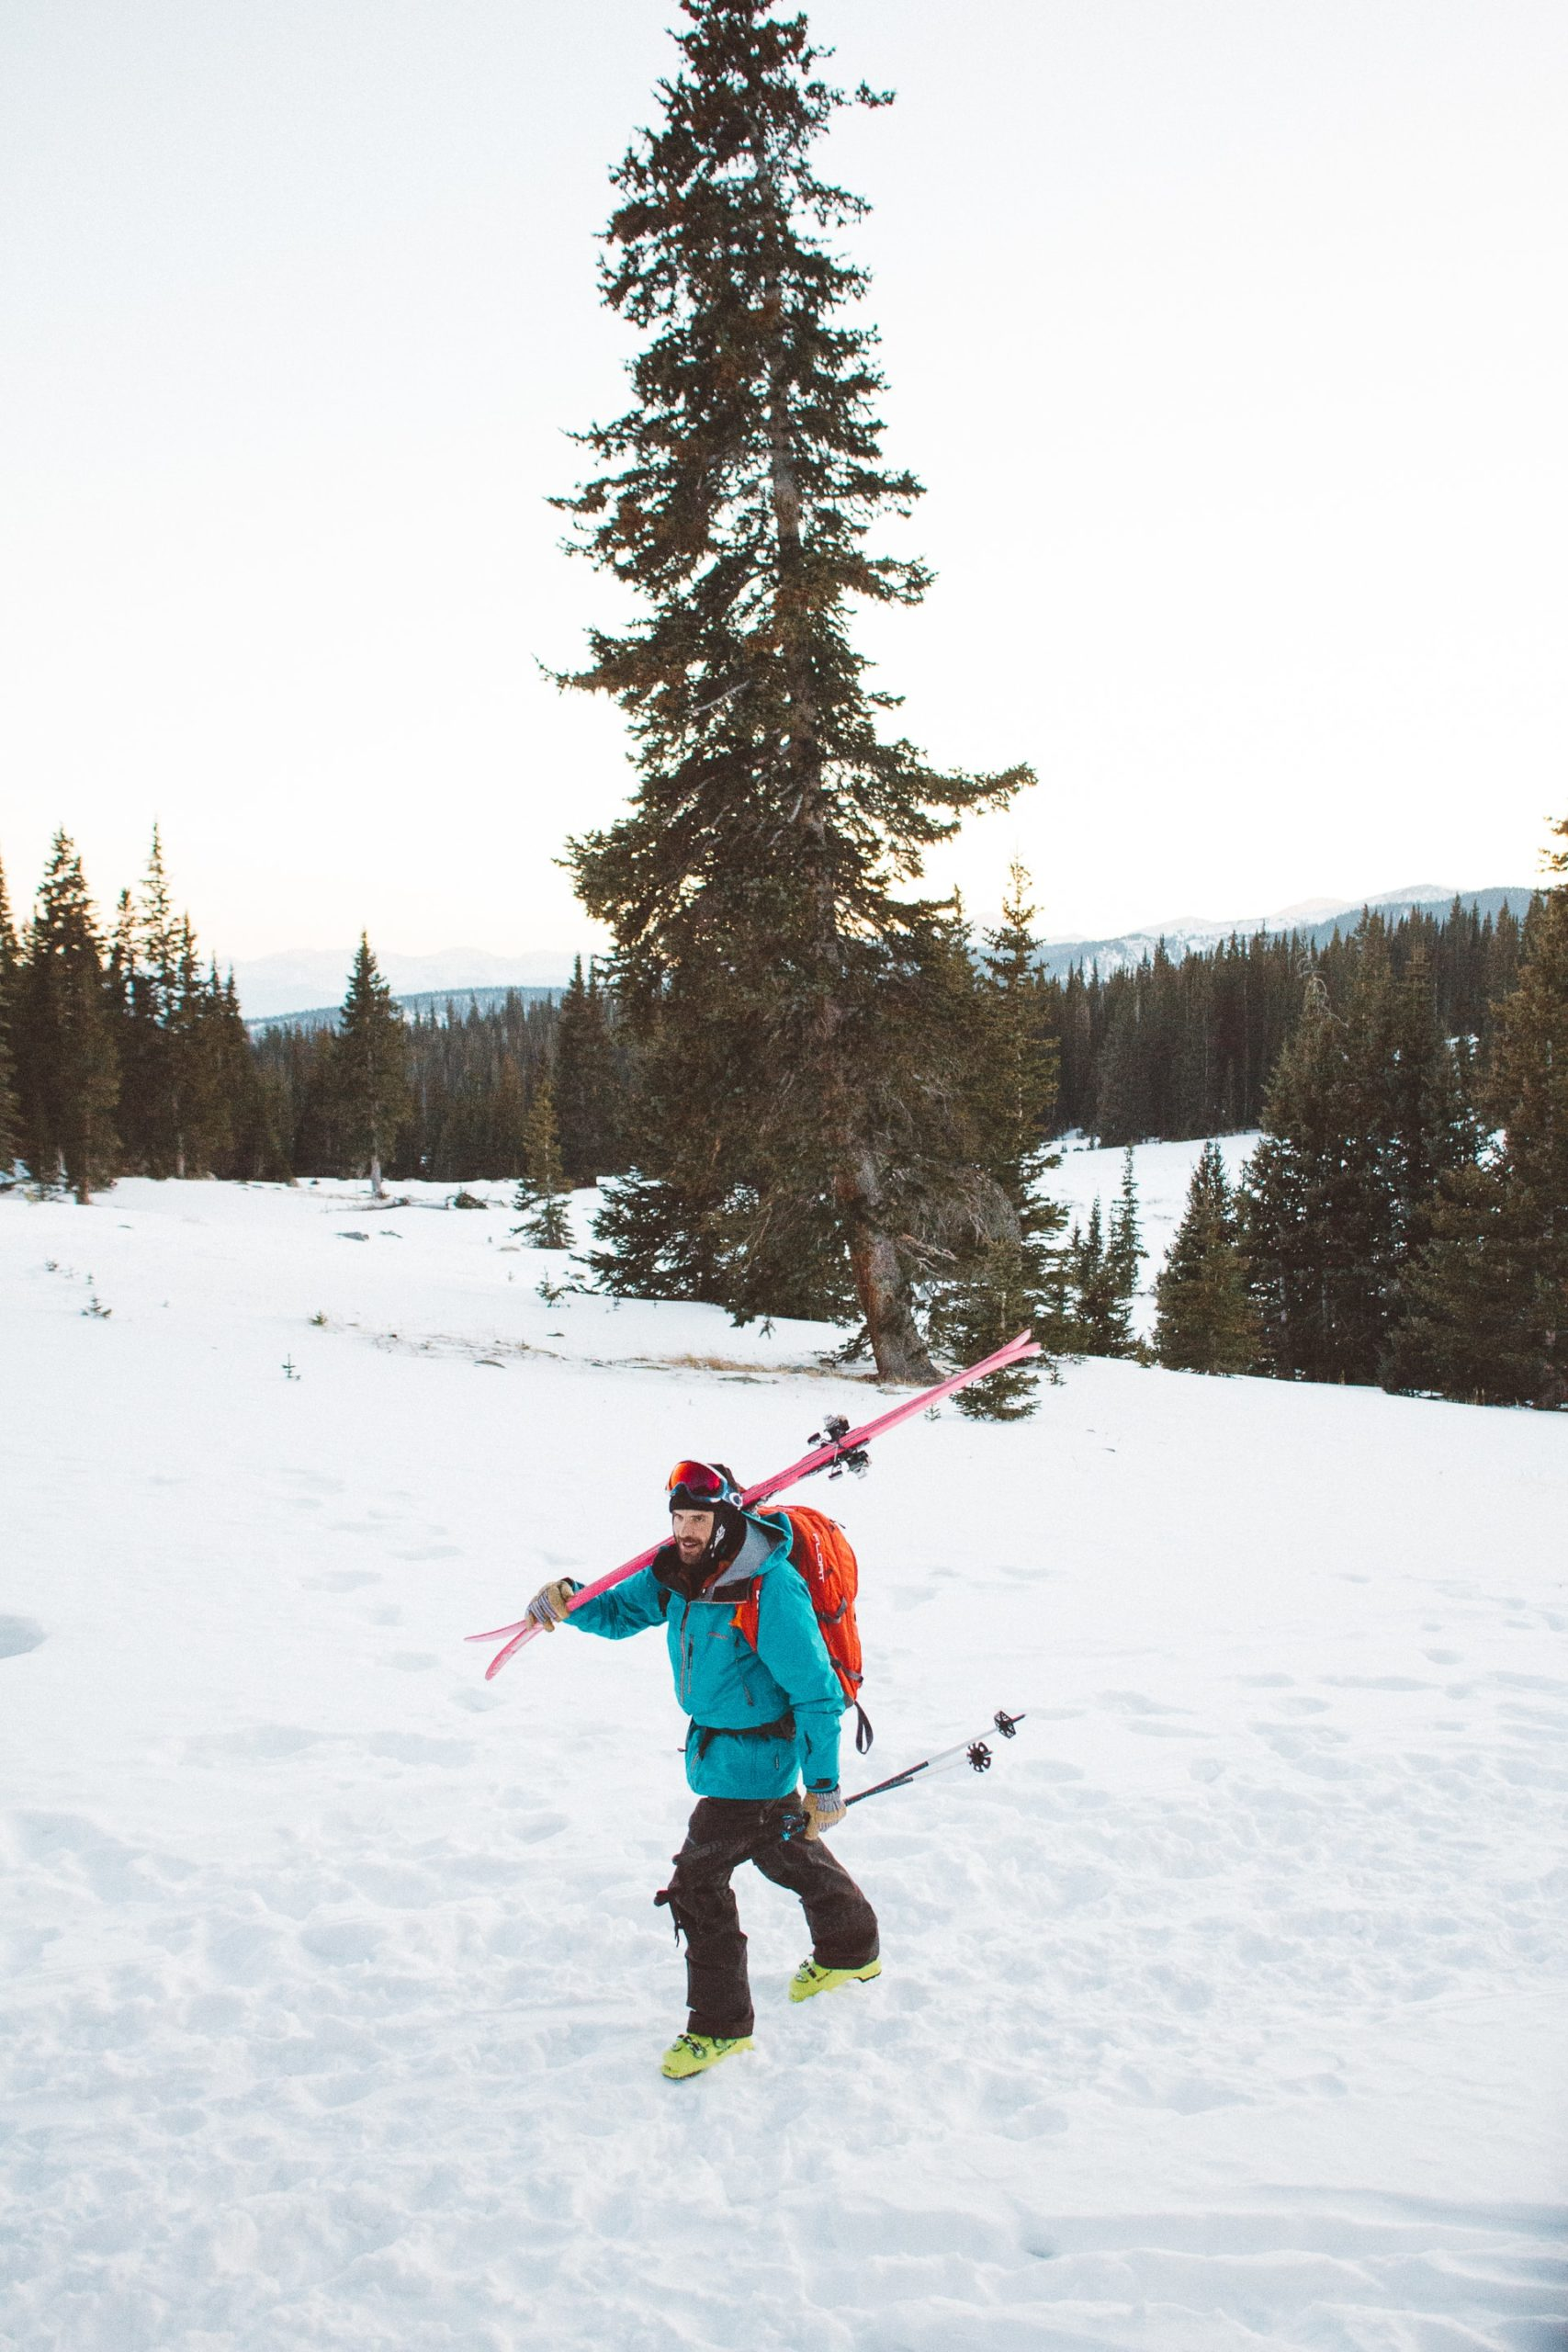 How To Make Skiing Vacations More Fun: Tips for Family Ski Vacations